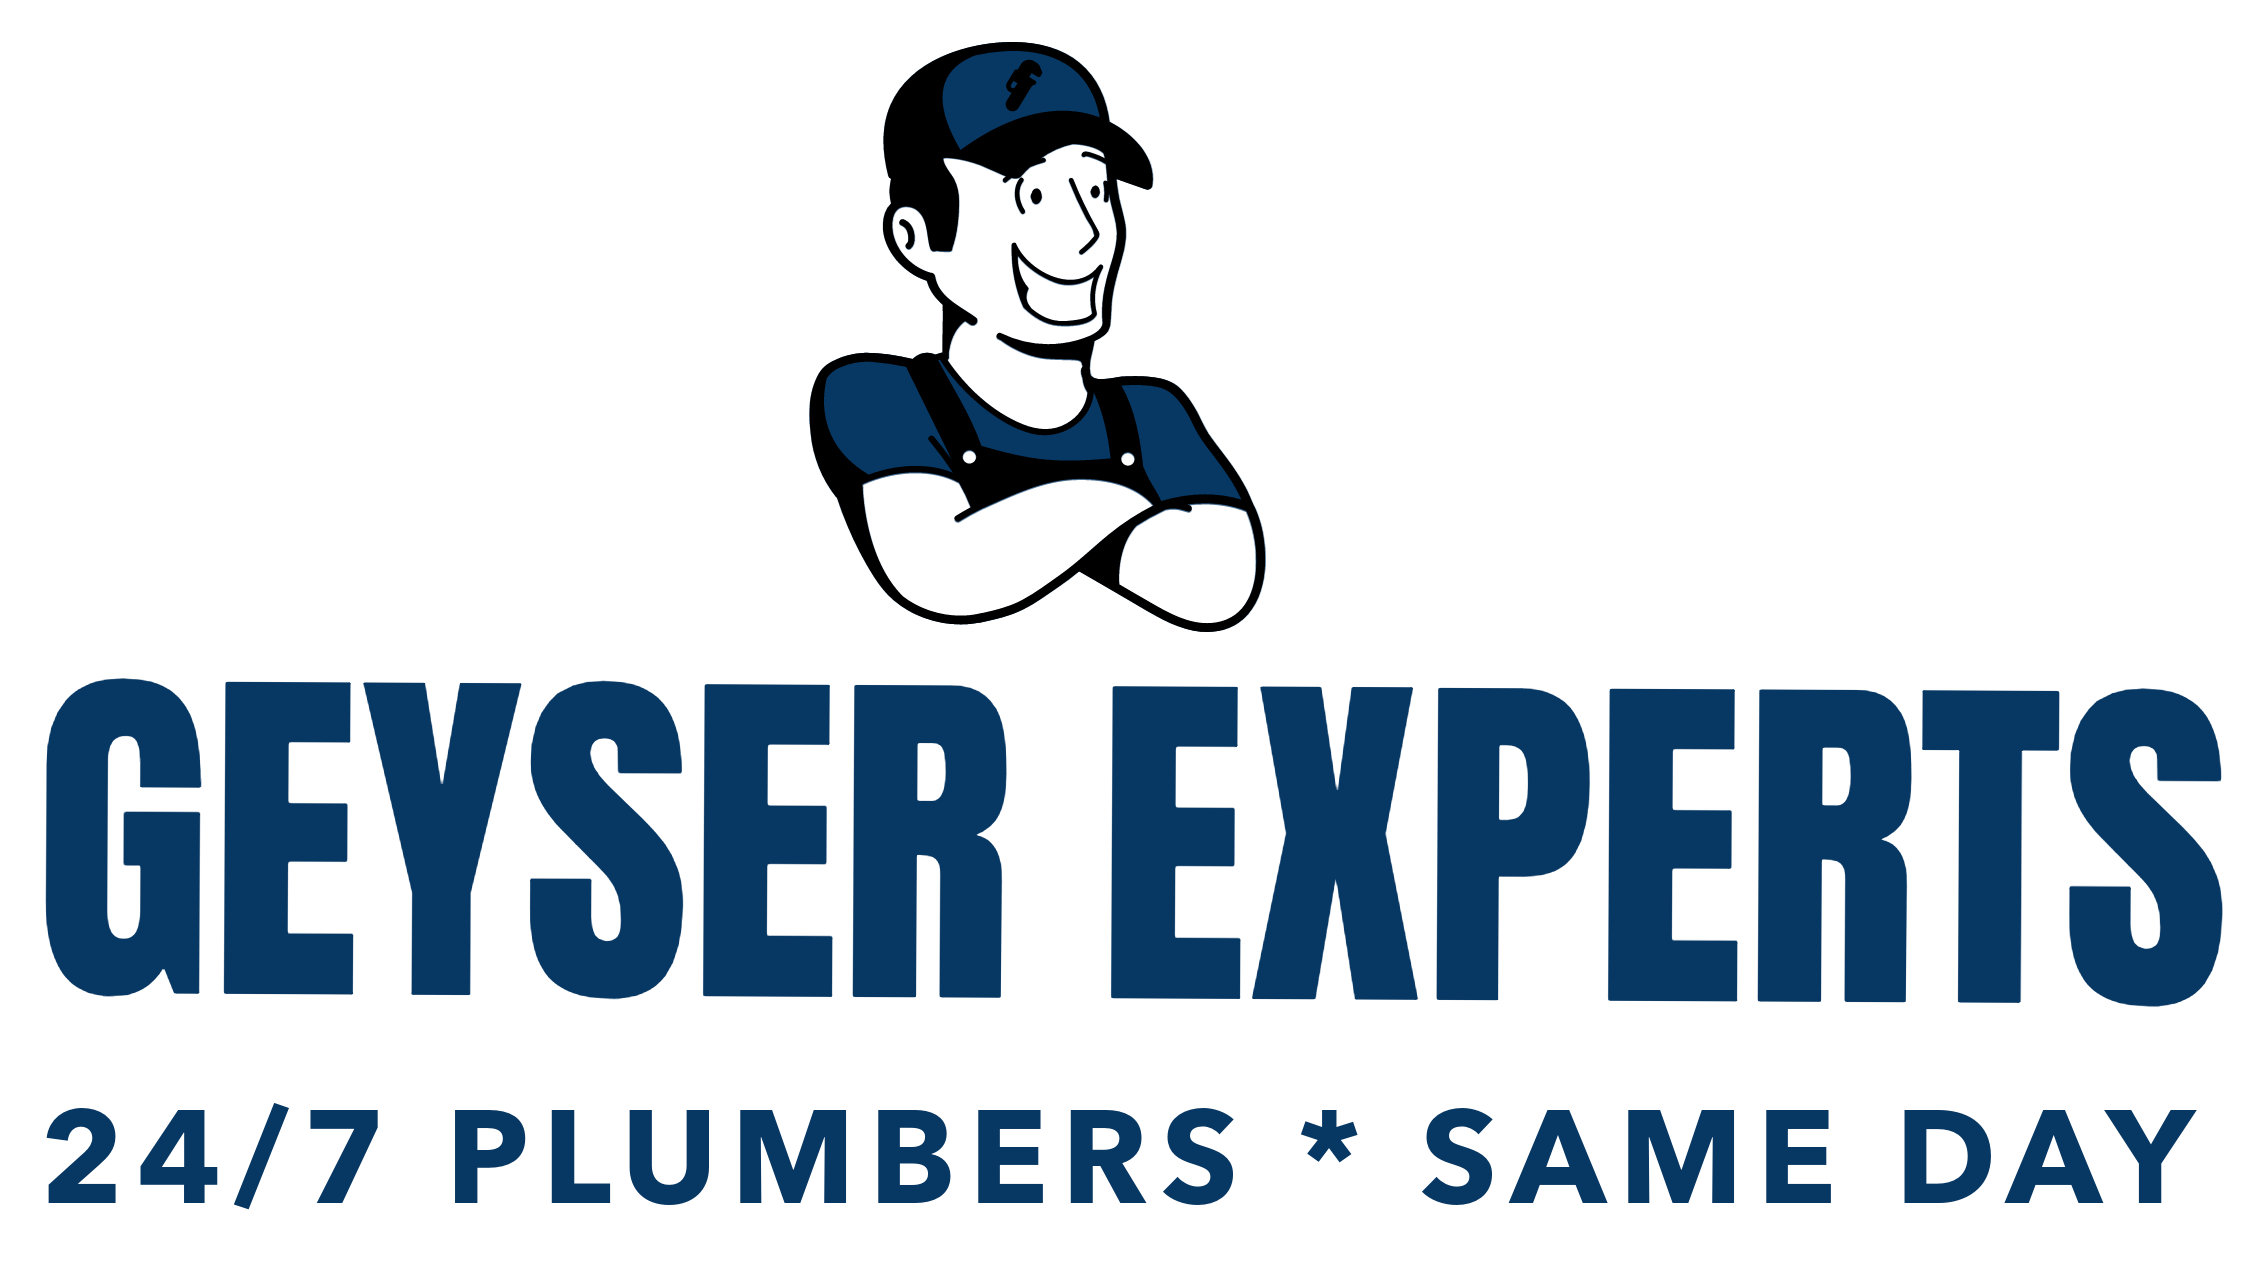 Geyser Experts Geyser Experts Logo Square Light BG